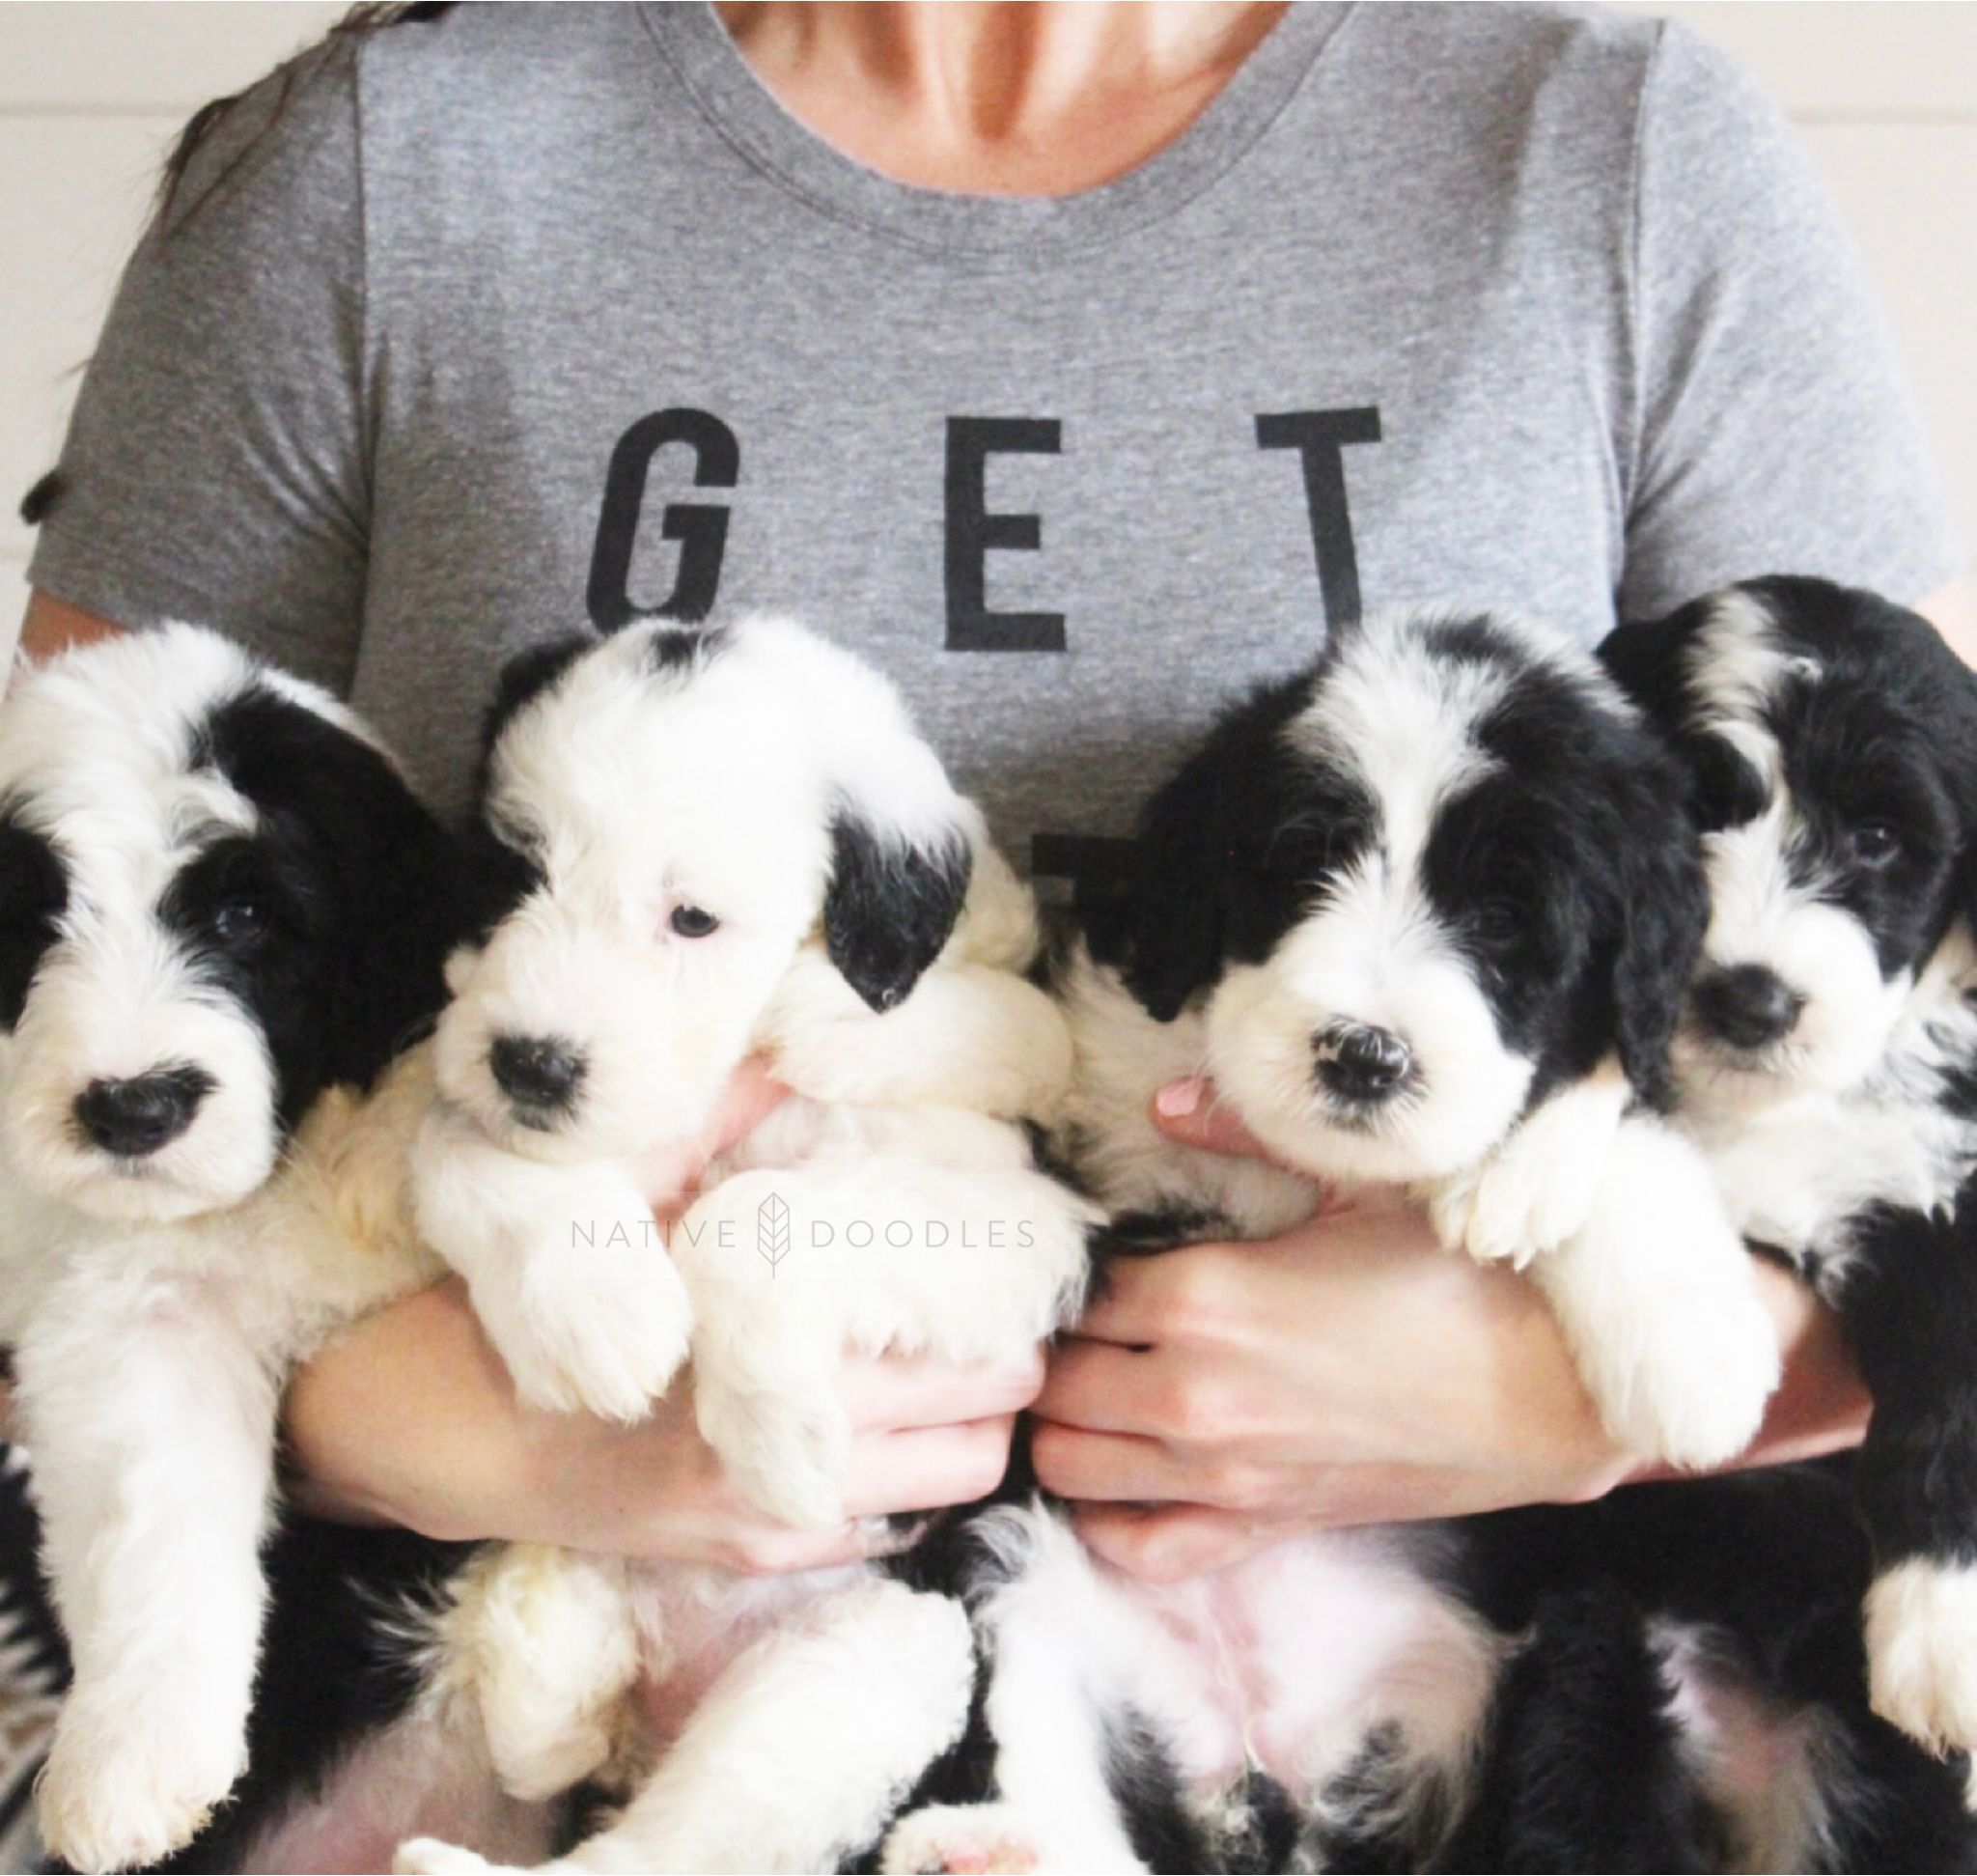 Standard Sheepadoodles From Native Doodles Sheepadoodle Puppy